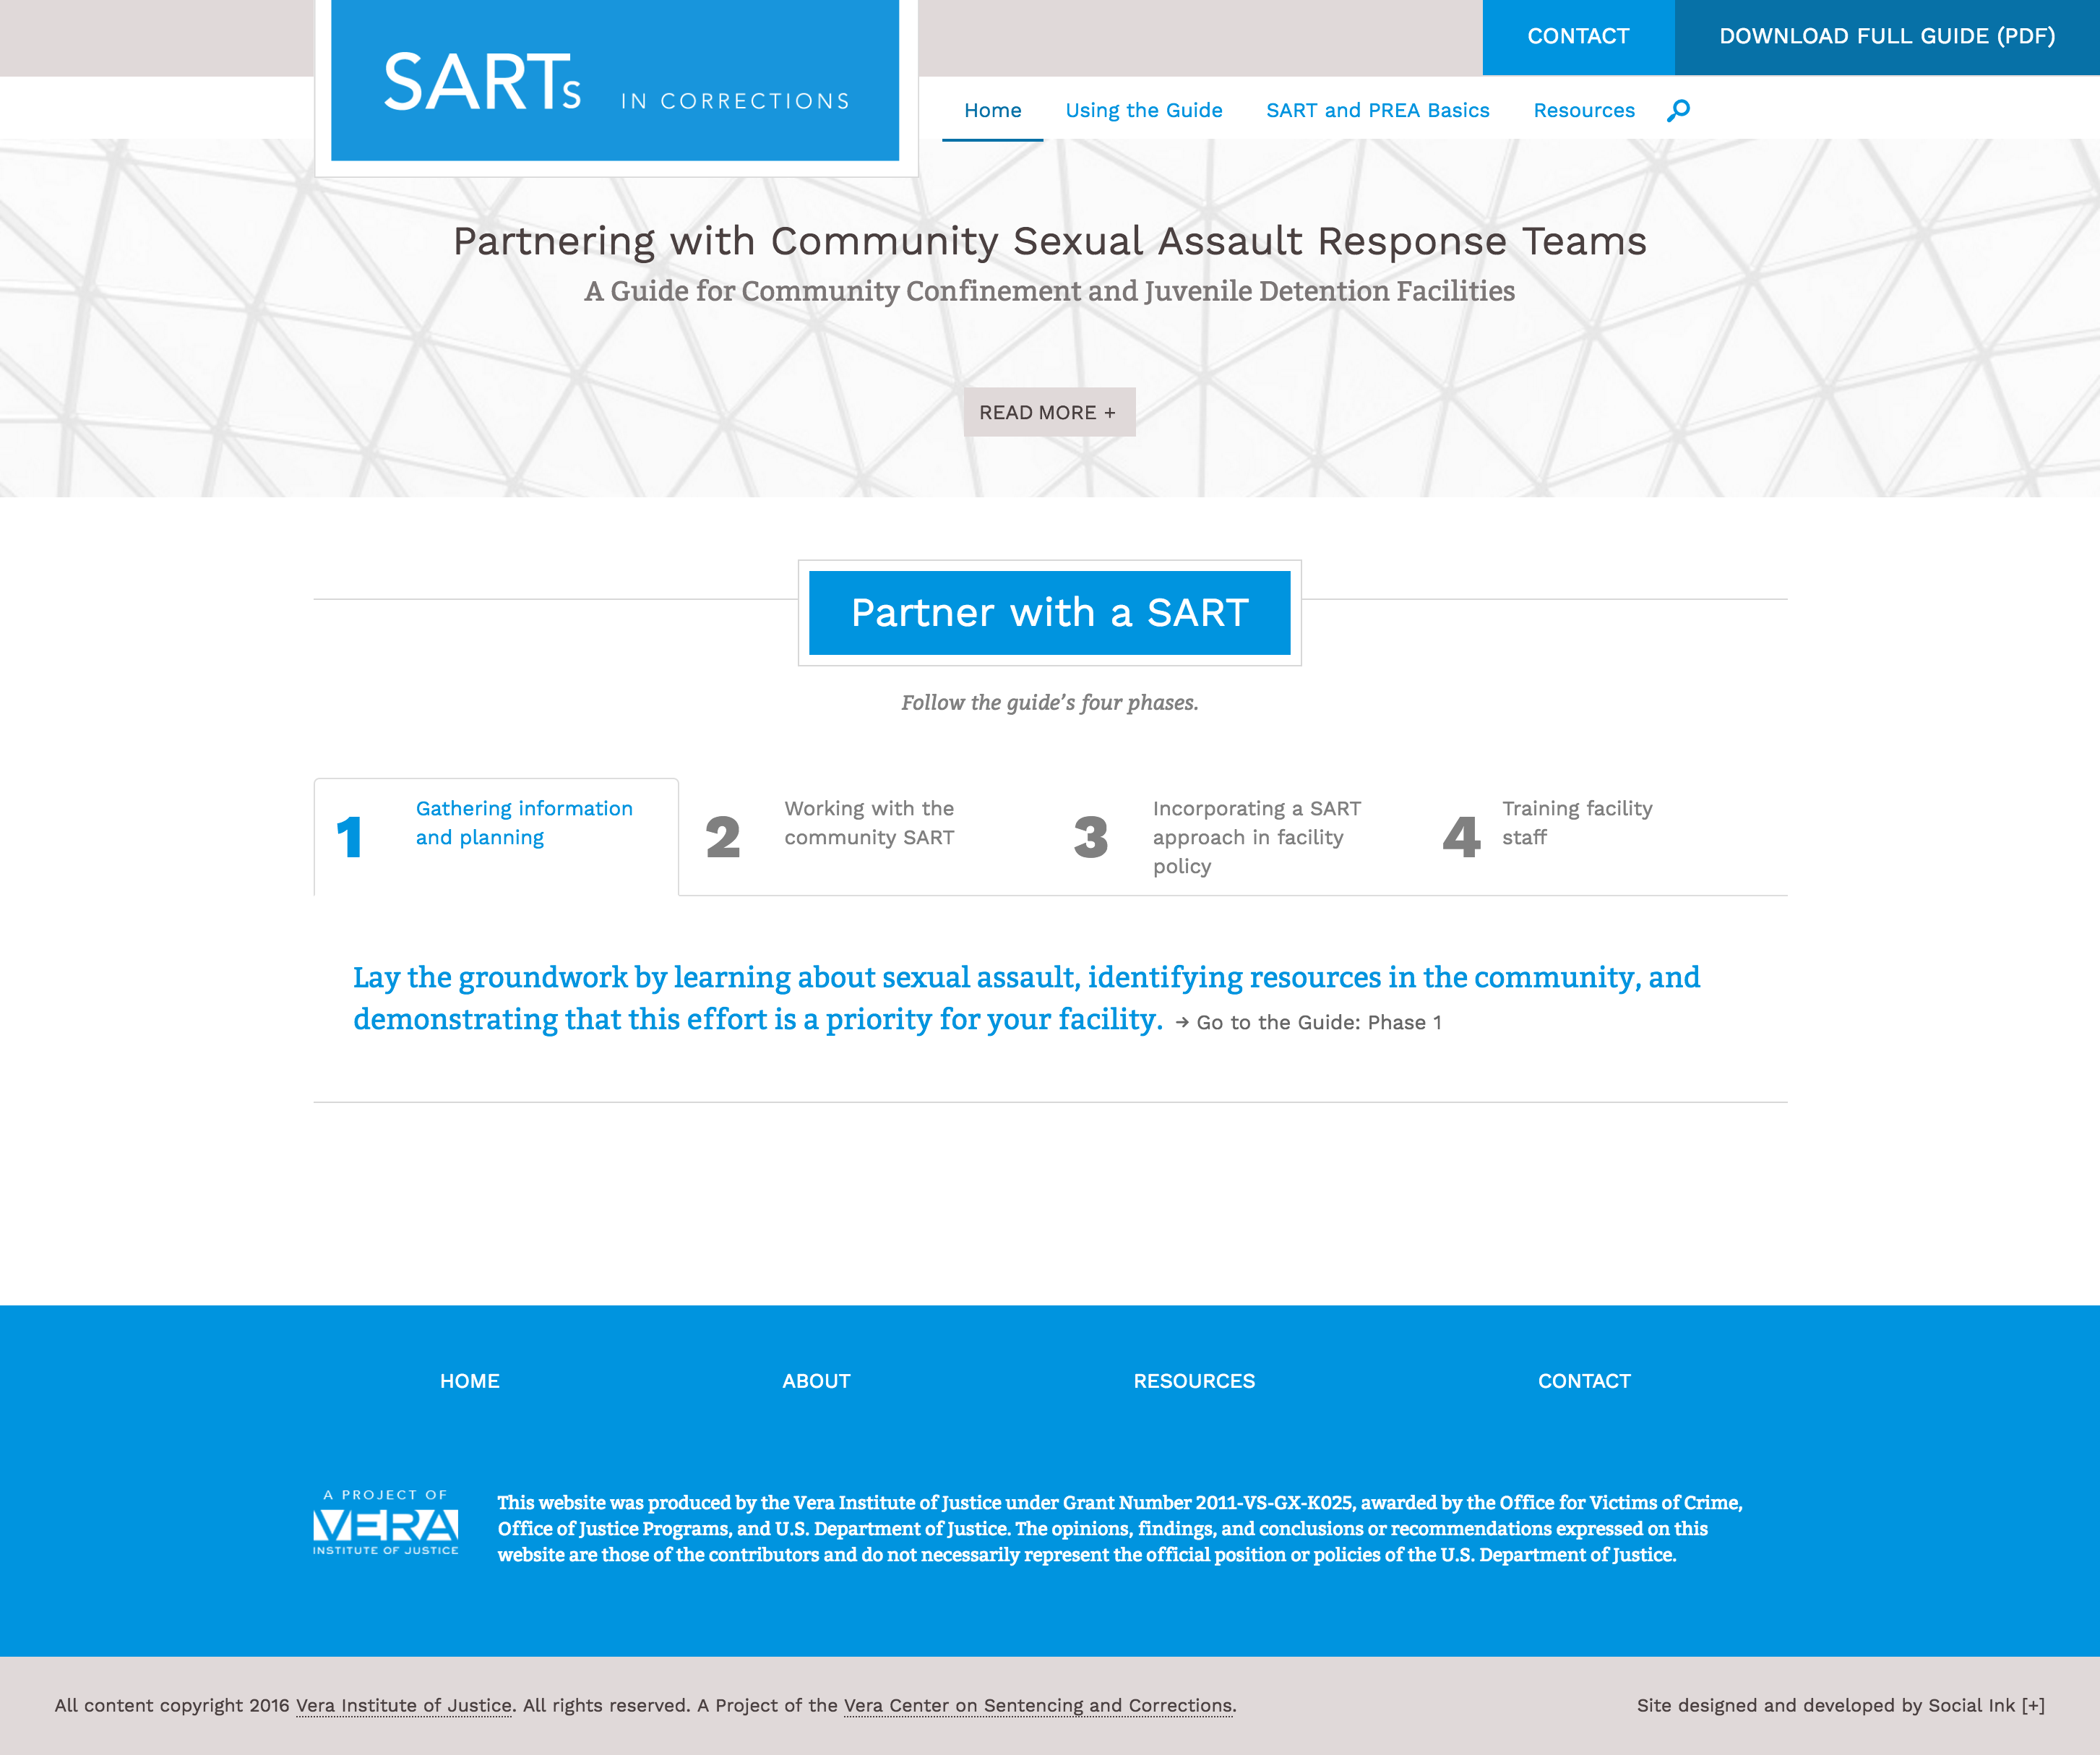 Vera Institute of Justice--SARTs in Corrections: SARTS Homepage